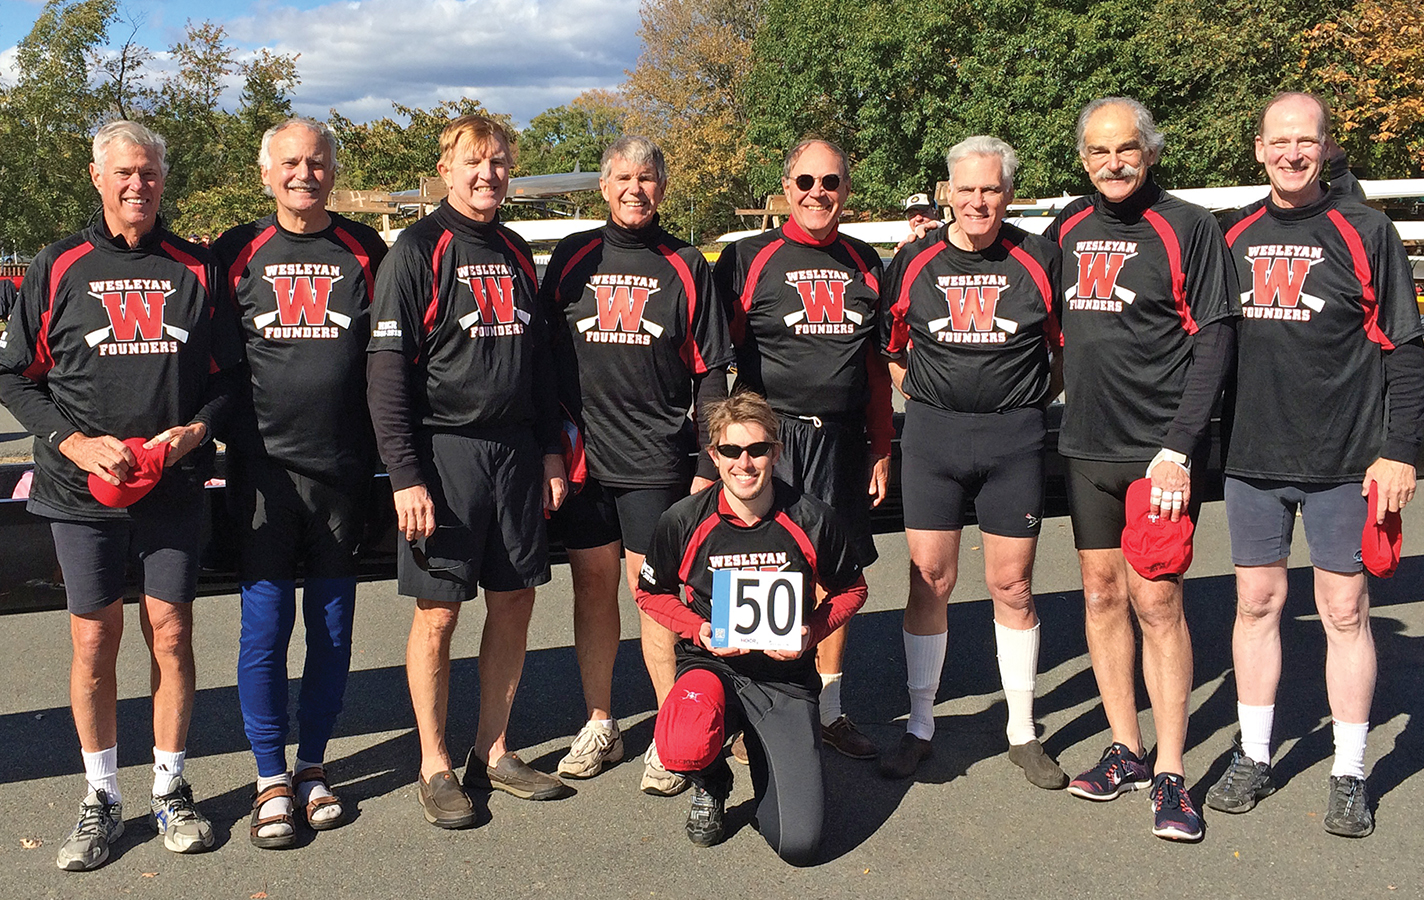 Photographed at the 2015 Head of the Charles, the Founders Group of Wesleyan Crew find the sport has brought them enduring friendships (left to right): Harrison Knight '68, Joe Kelly Hughes '67, Bill Nicholson '68, Wally Murfiit '68, Bob Svensk '68, Will Macoy '67, John Lipsky '68, Nason Hamlin '68, and, kneeling, cox George Bennum '09.